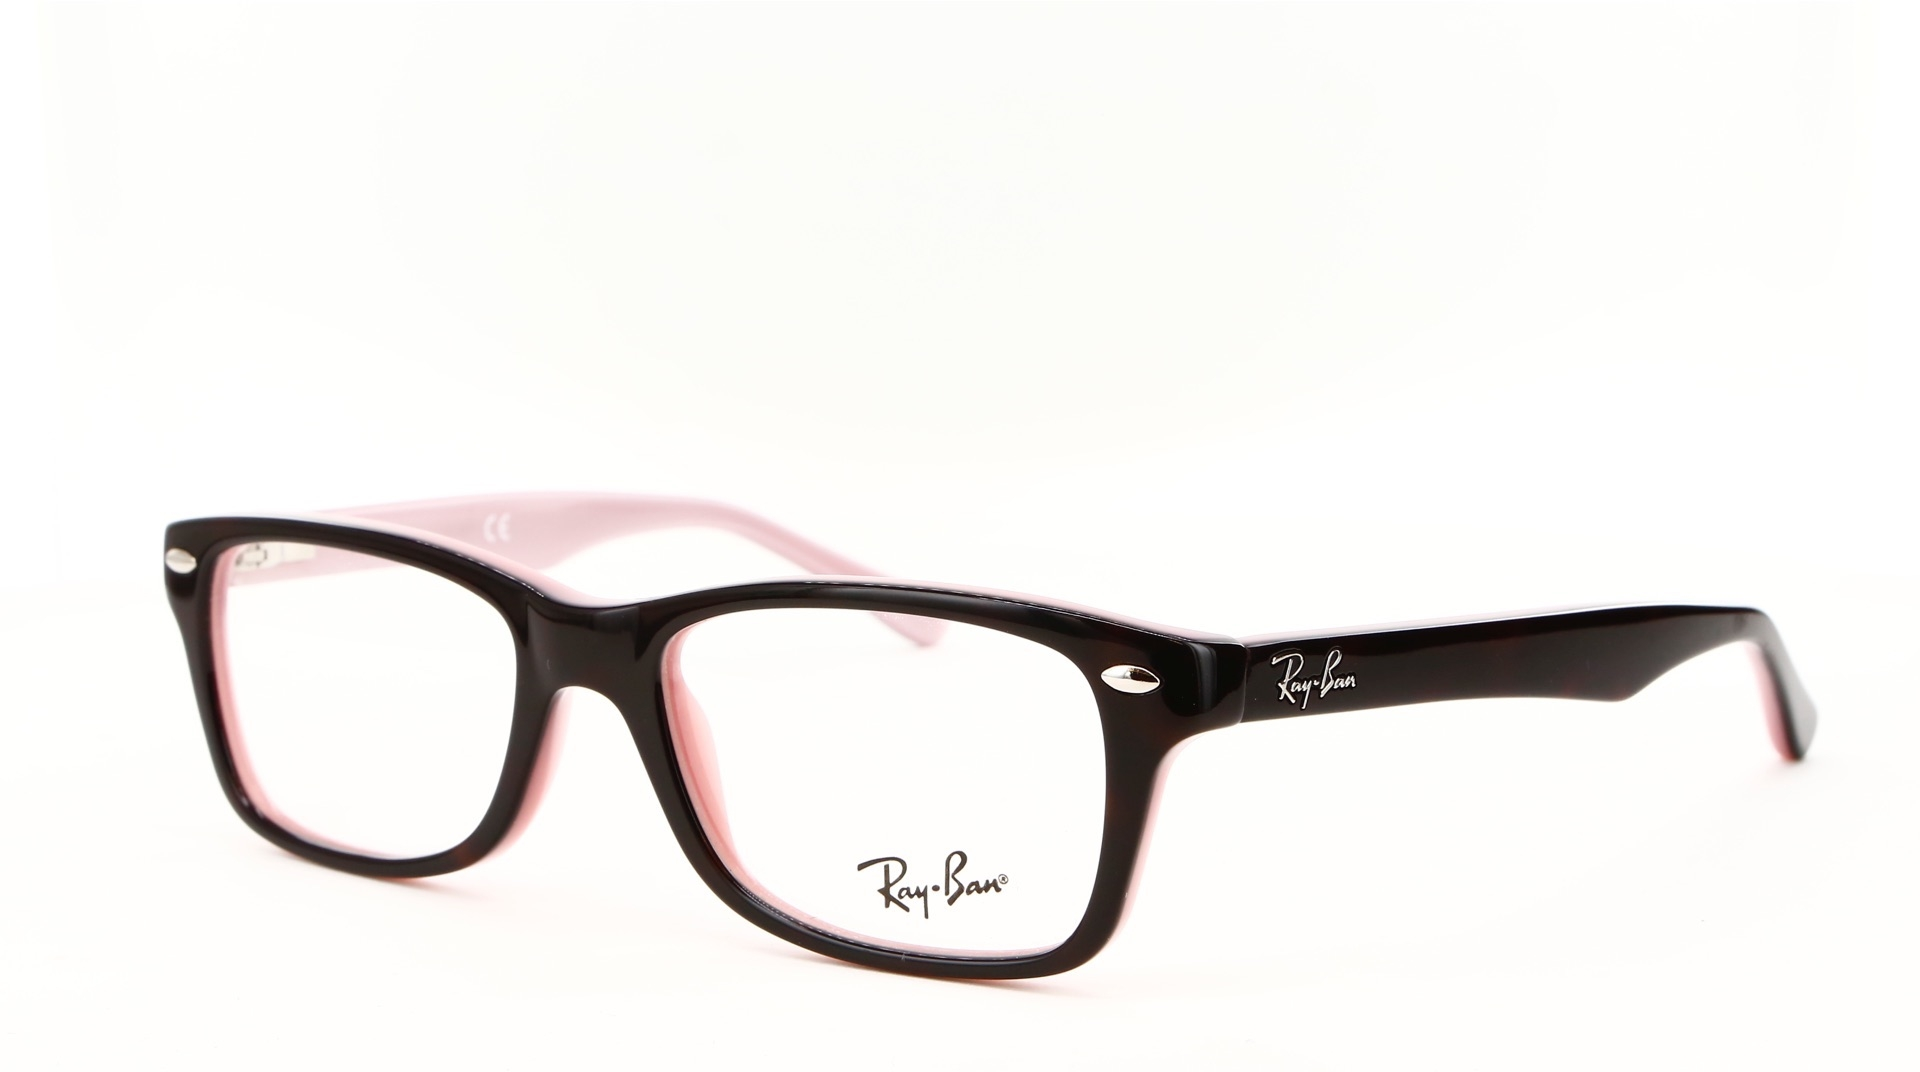 Ray-Ban - ref: 70828